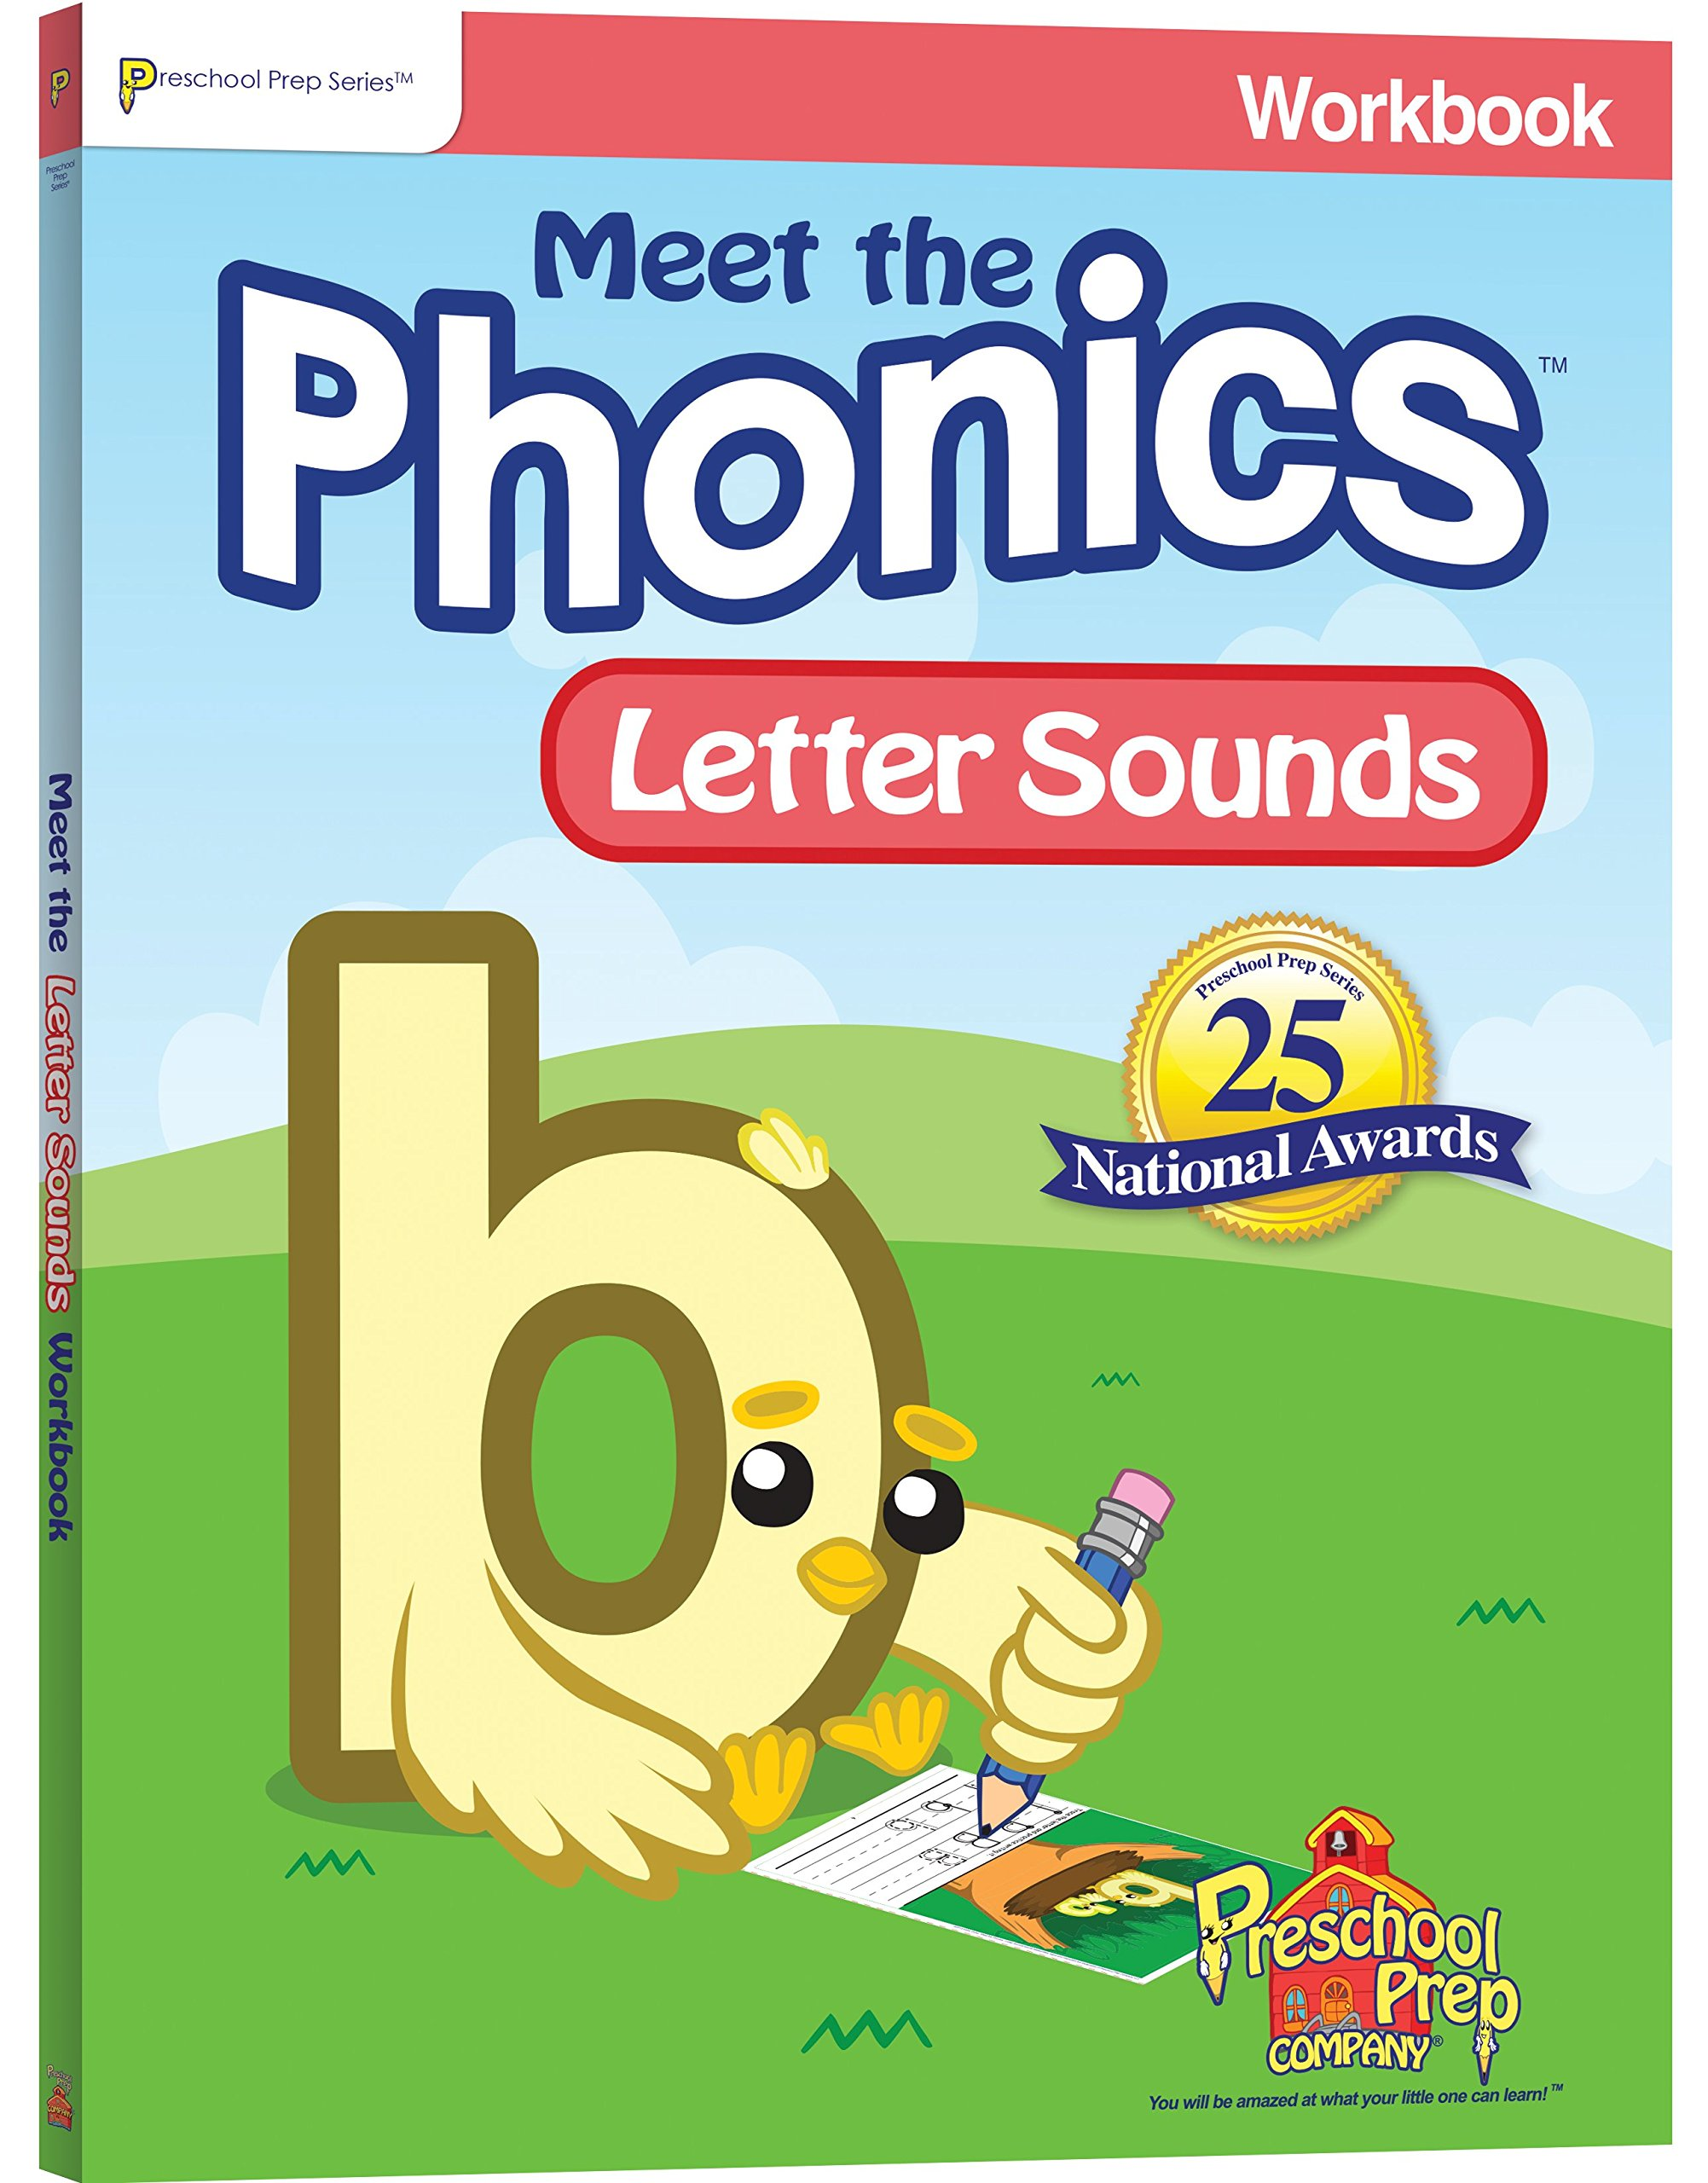 Meet the Phonics - Letter Sounds Workbook: Kathy Oxley ...